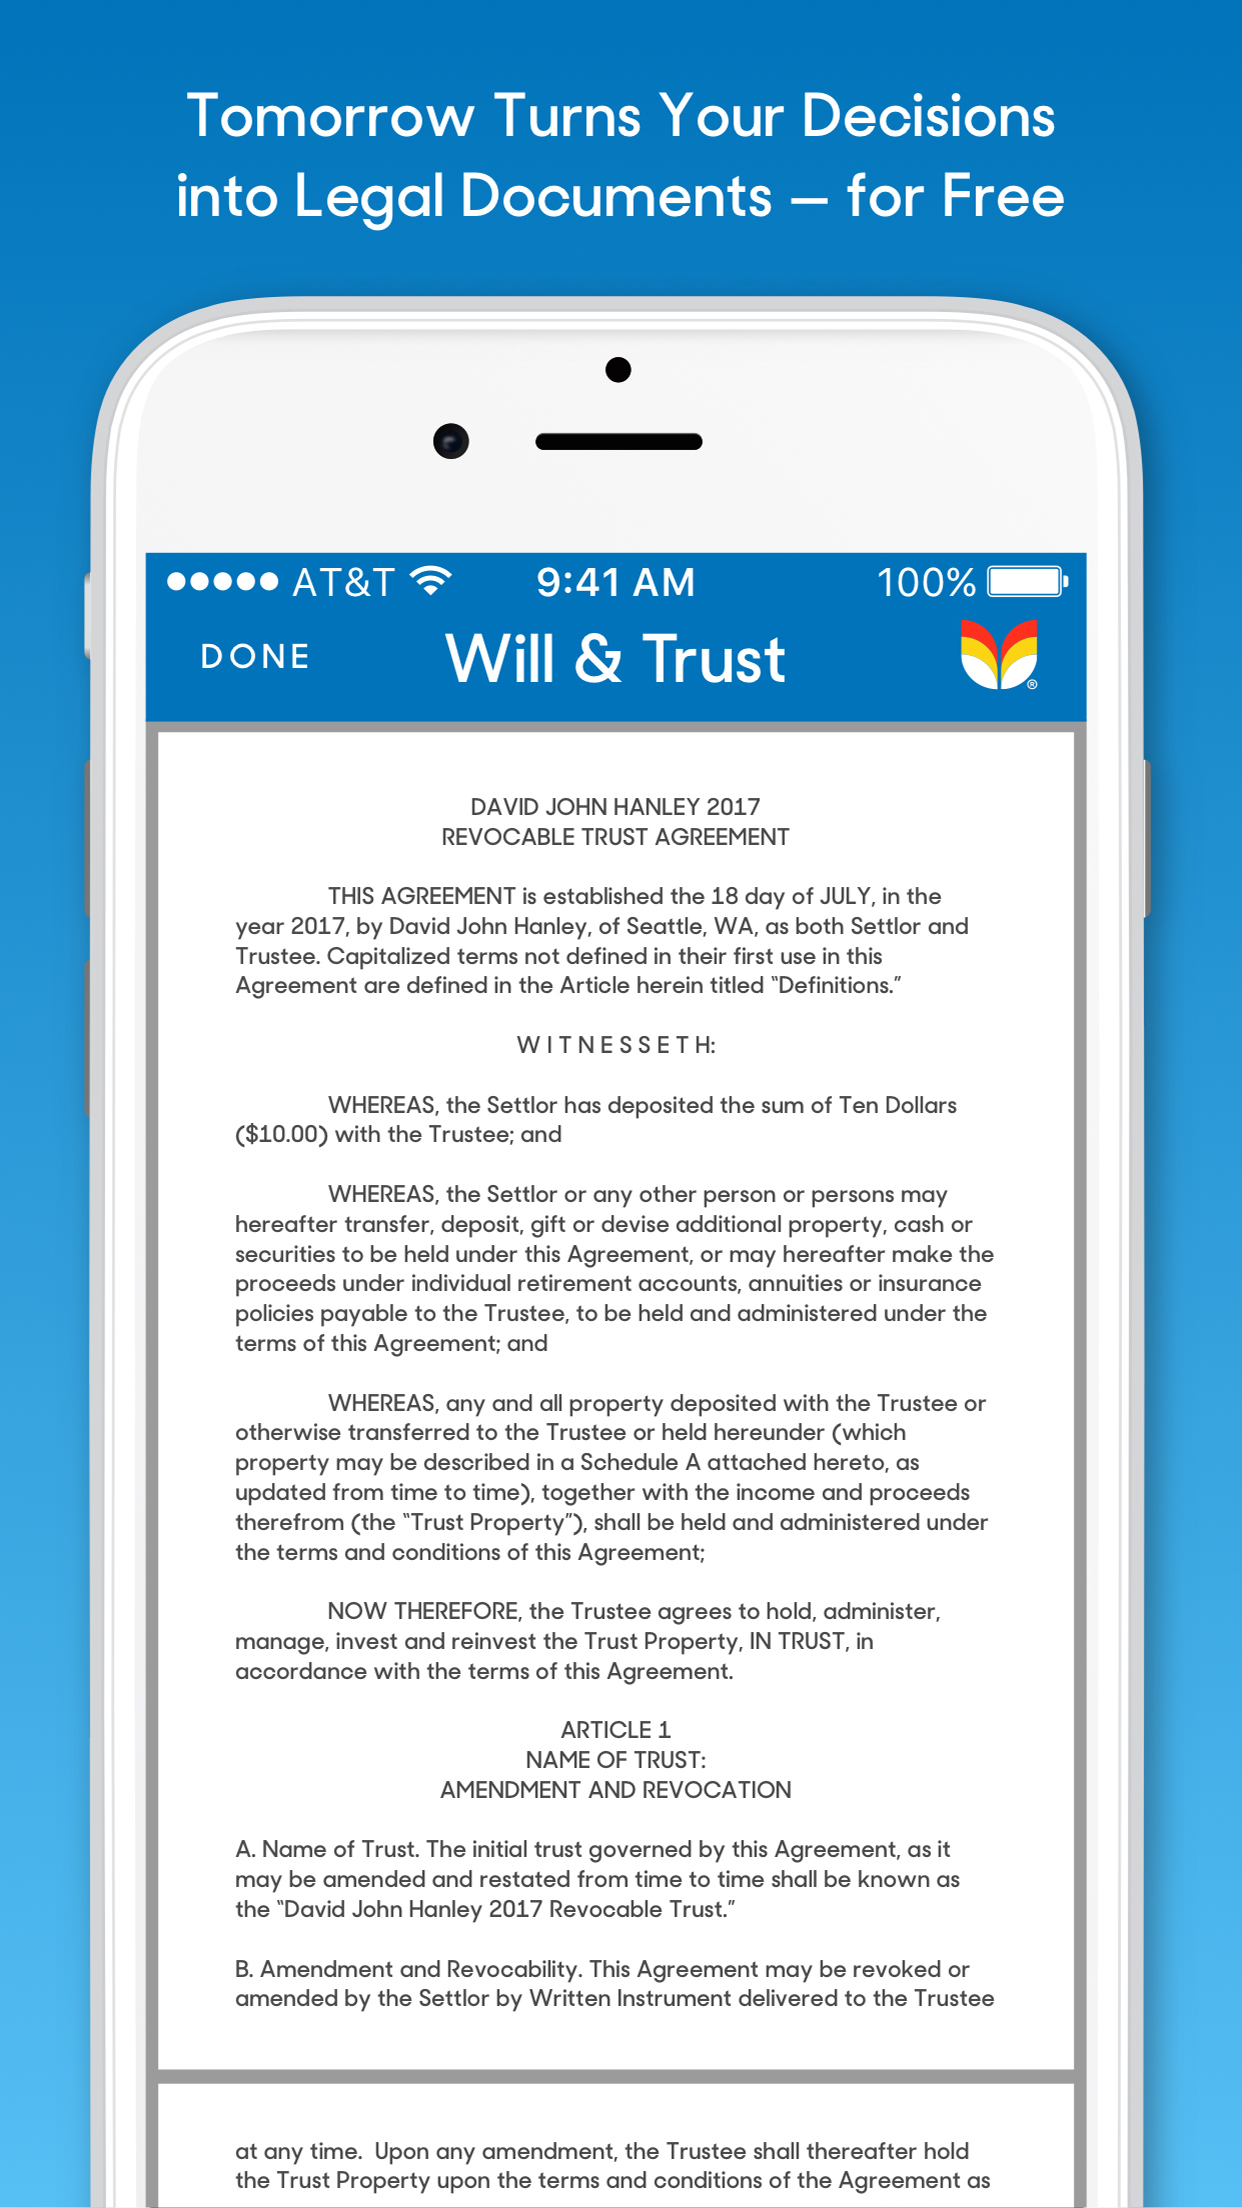 Will & Trust: - Tomorrow turns important life decisions into legit legal documents, sent as a custom PDF file for users to sign, with instructions on how to make them legally binding.Beyond a will, users are asked to decide how they want to distribute financial assets placed in their very own trust – which, contrary to popular opinion, is not just for the rich.Unlike a will, trusts are not public documents. They keep belongings and financial assets private, can be used to spread out payments for children's future expenses (i.e., college, weddings, etc.), reduce the hassle and cost of probate court for loved ones, protect assets while alive but incapacitated, and protect against variances in state laws when people move.Tomorrow's wills and trusts are offered and legally compliant in every state except Alaska, Louisiana, and North Carolina.These sophisticated, state-specific docs are versatile enough to work for those on a tight budget to millionaires; single or married; blended or LGBTQ families; and more.Best of all, they can be changed and updated anytime, at no cost, unlike conventional methods which require costly lawyer visits.